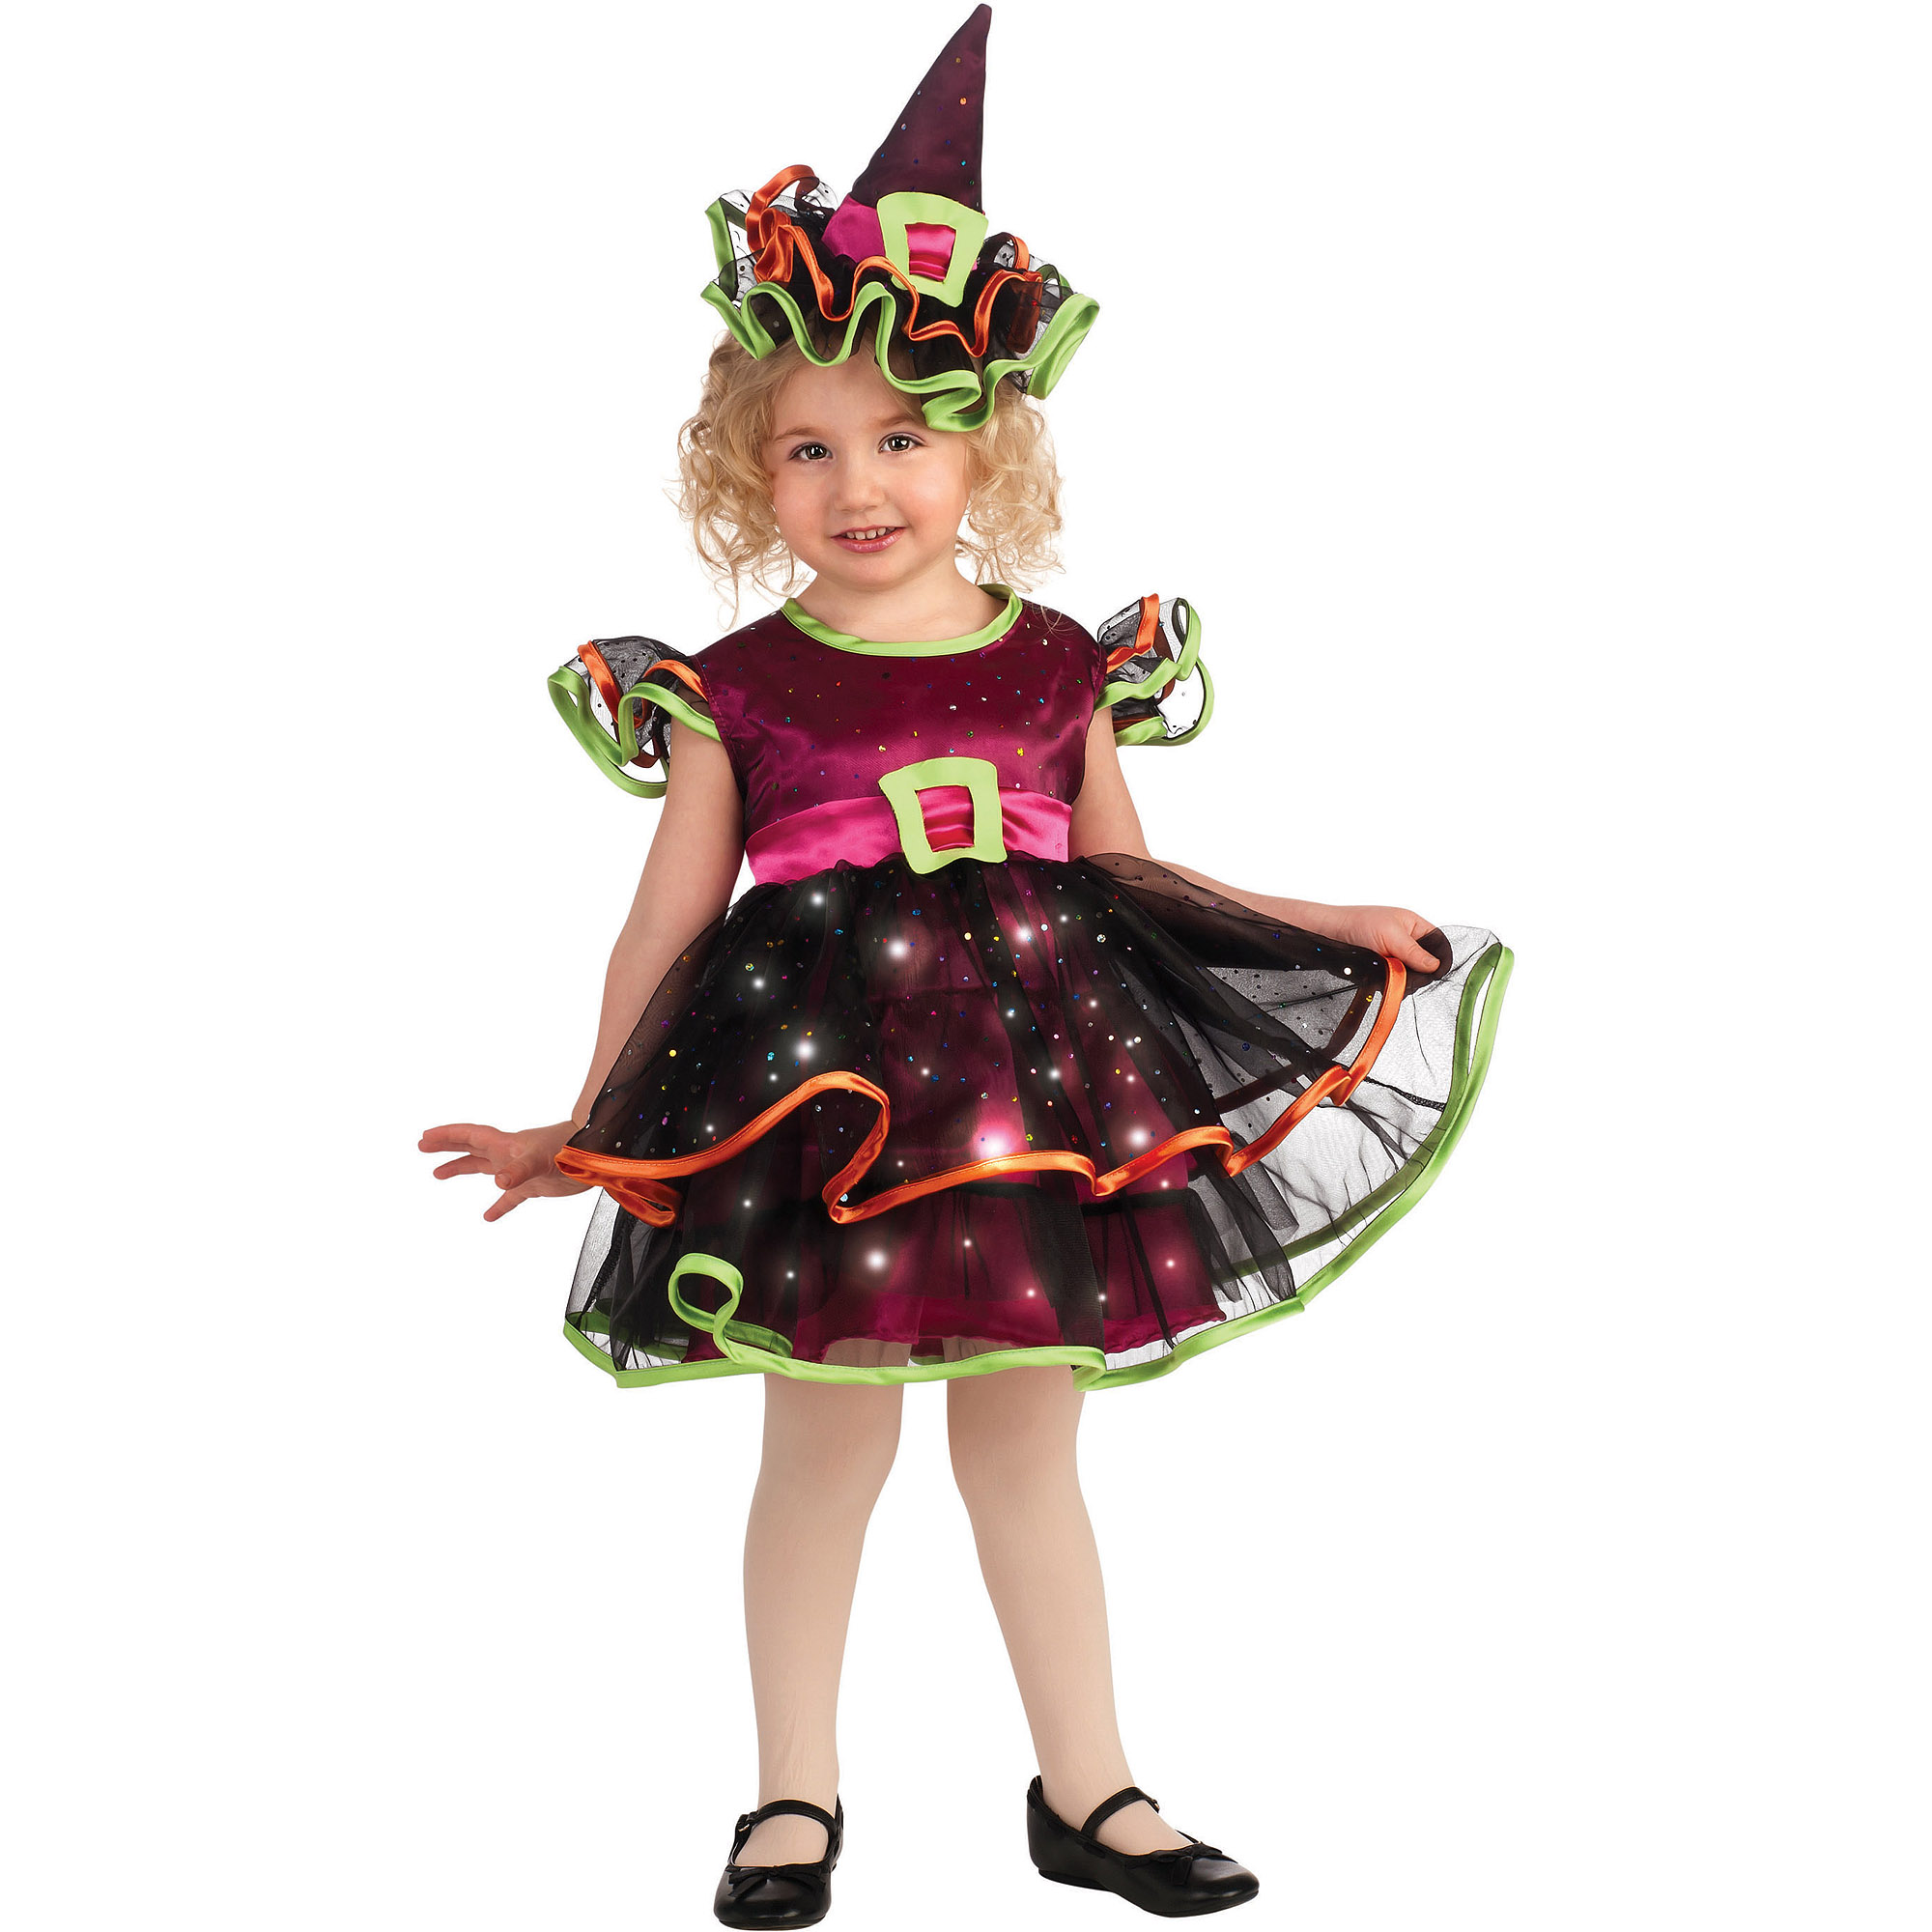 Light Up Confetti Witch Toddler Halloween Costume  sc 1 st  Walmart & Light Up Confetti Witch Toddler Halloween Costume - Walmart.com